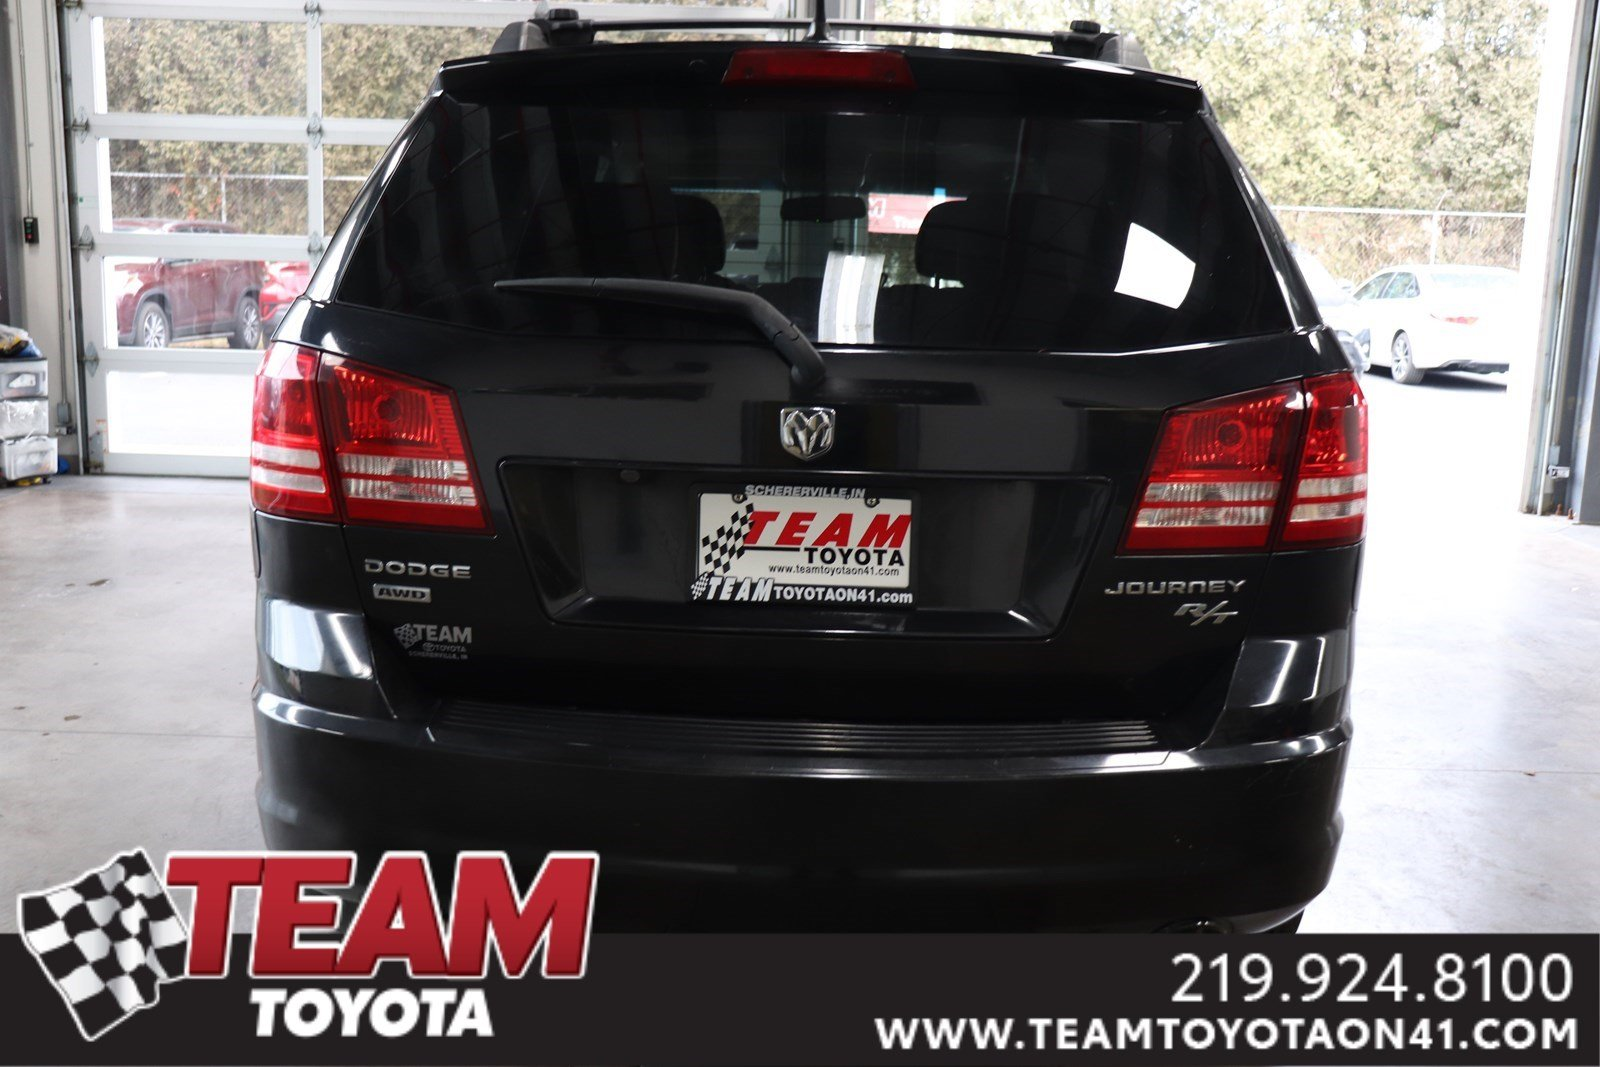 Pre-Owned 2010 Dodge Journey R/T